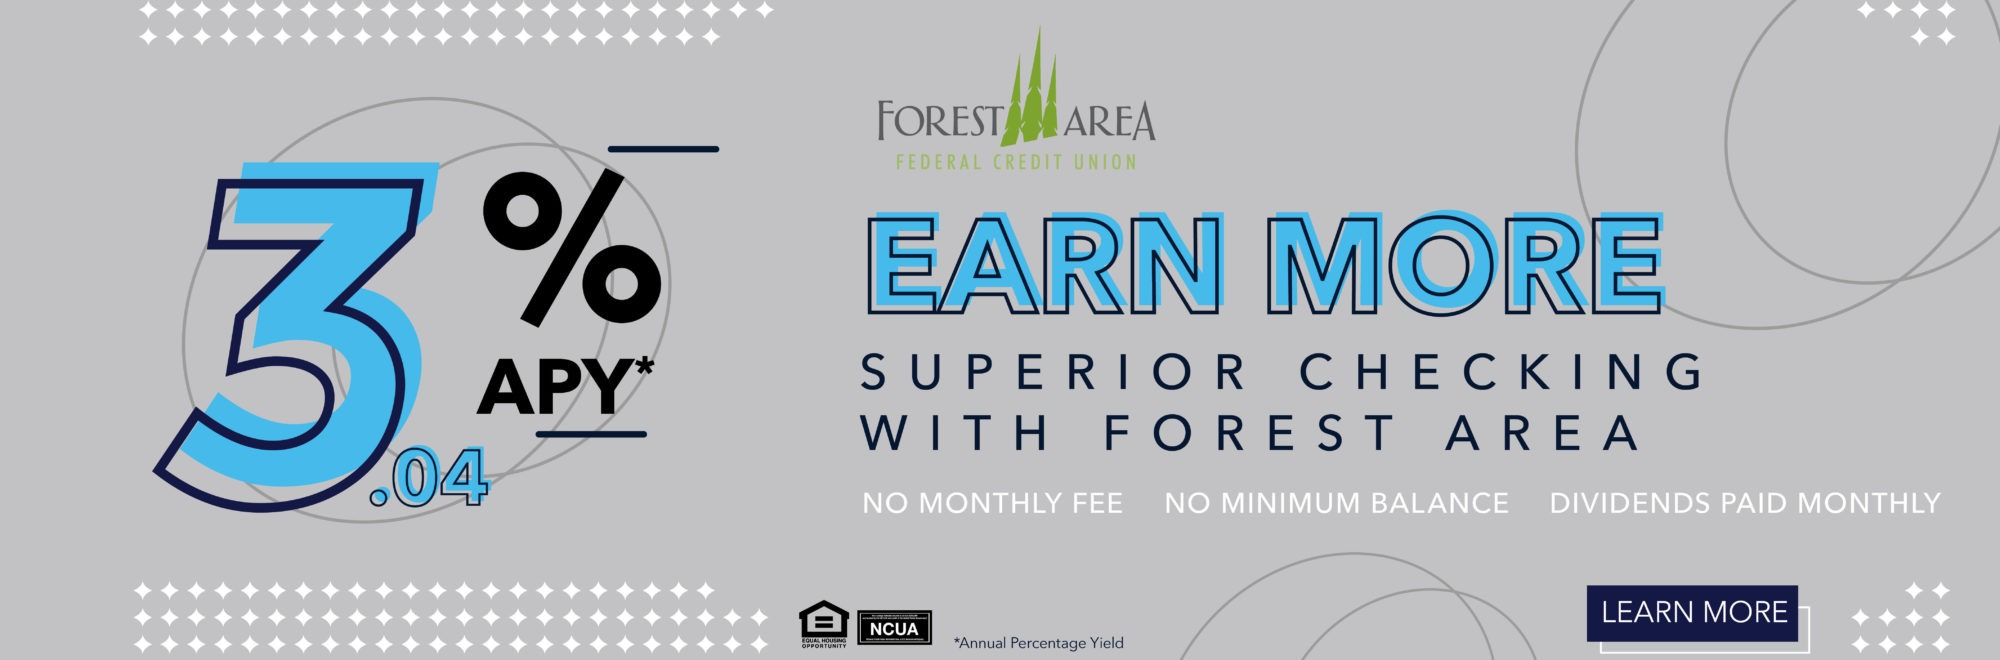 Learn more about how you can earn up to 3.04% on your first $15,000 with Superior Checking